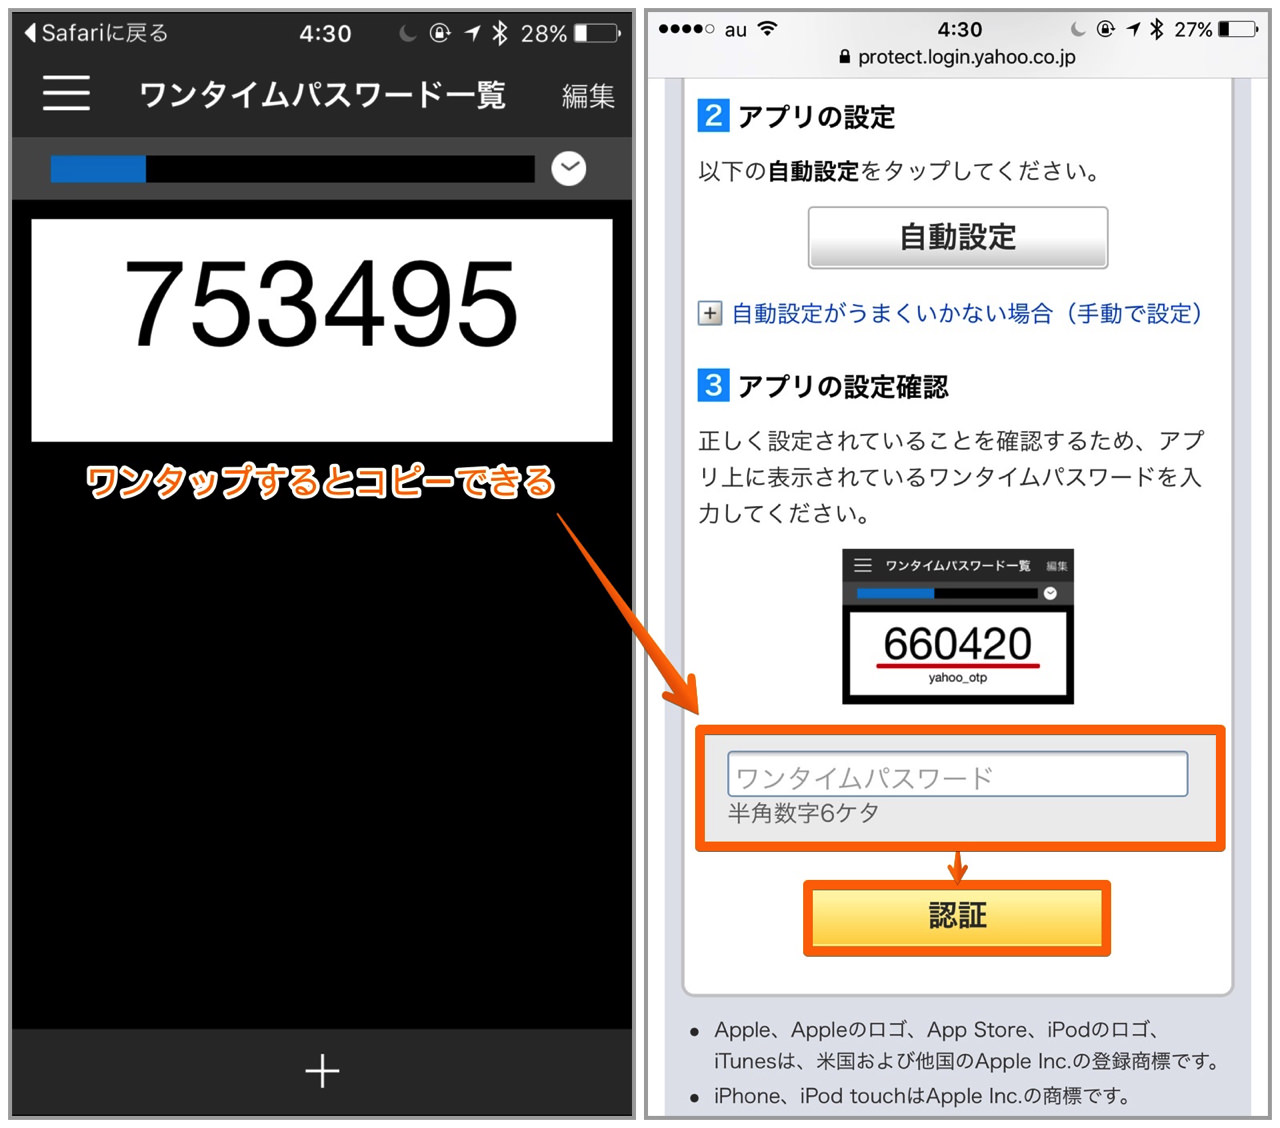 How to set one time password to yahoo japan id2